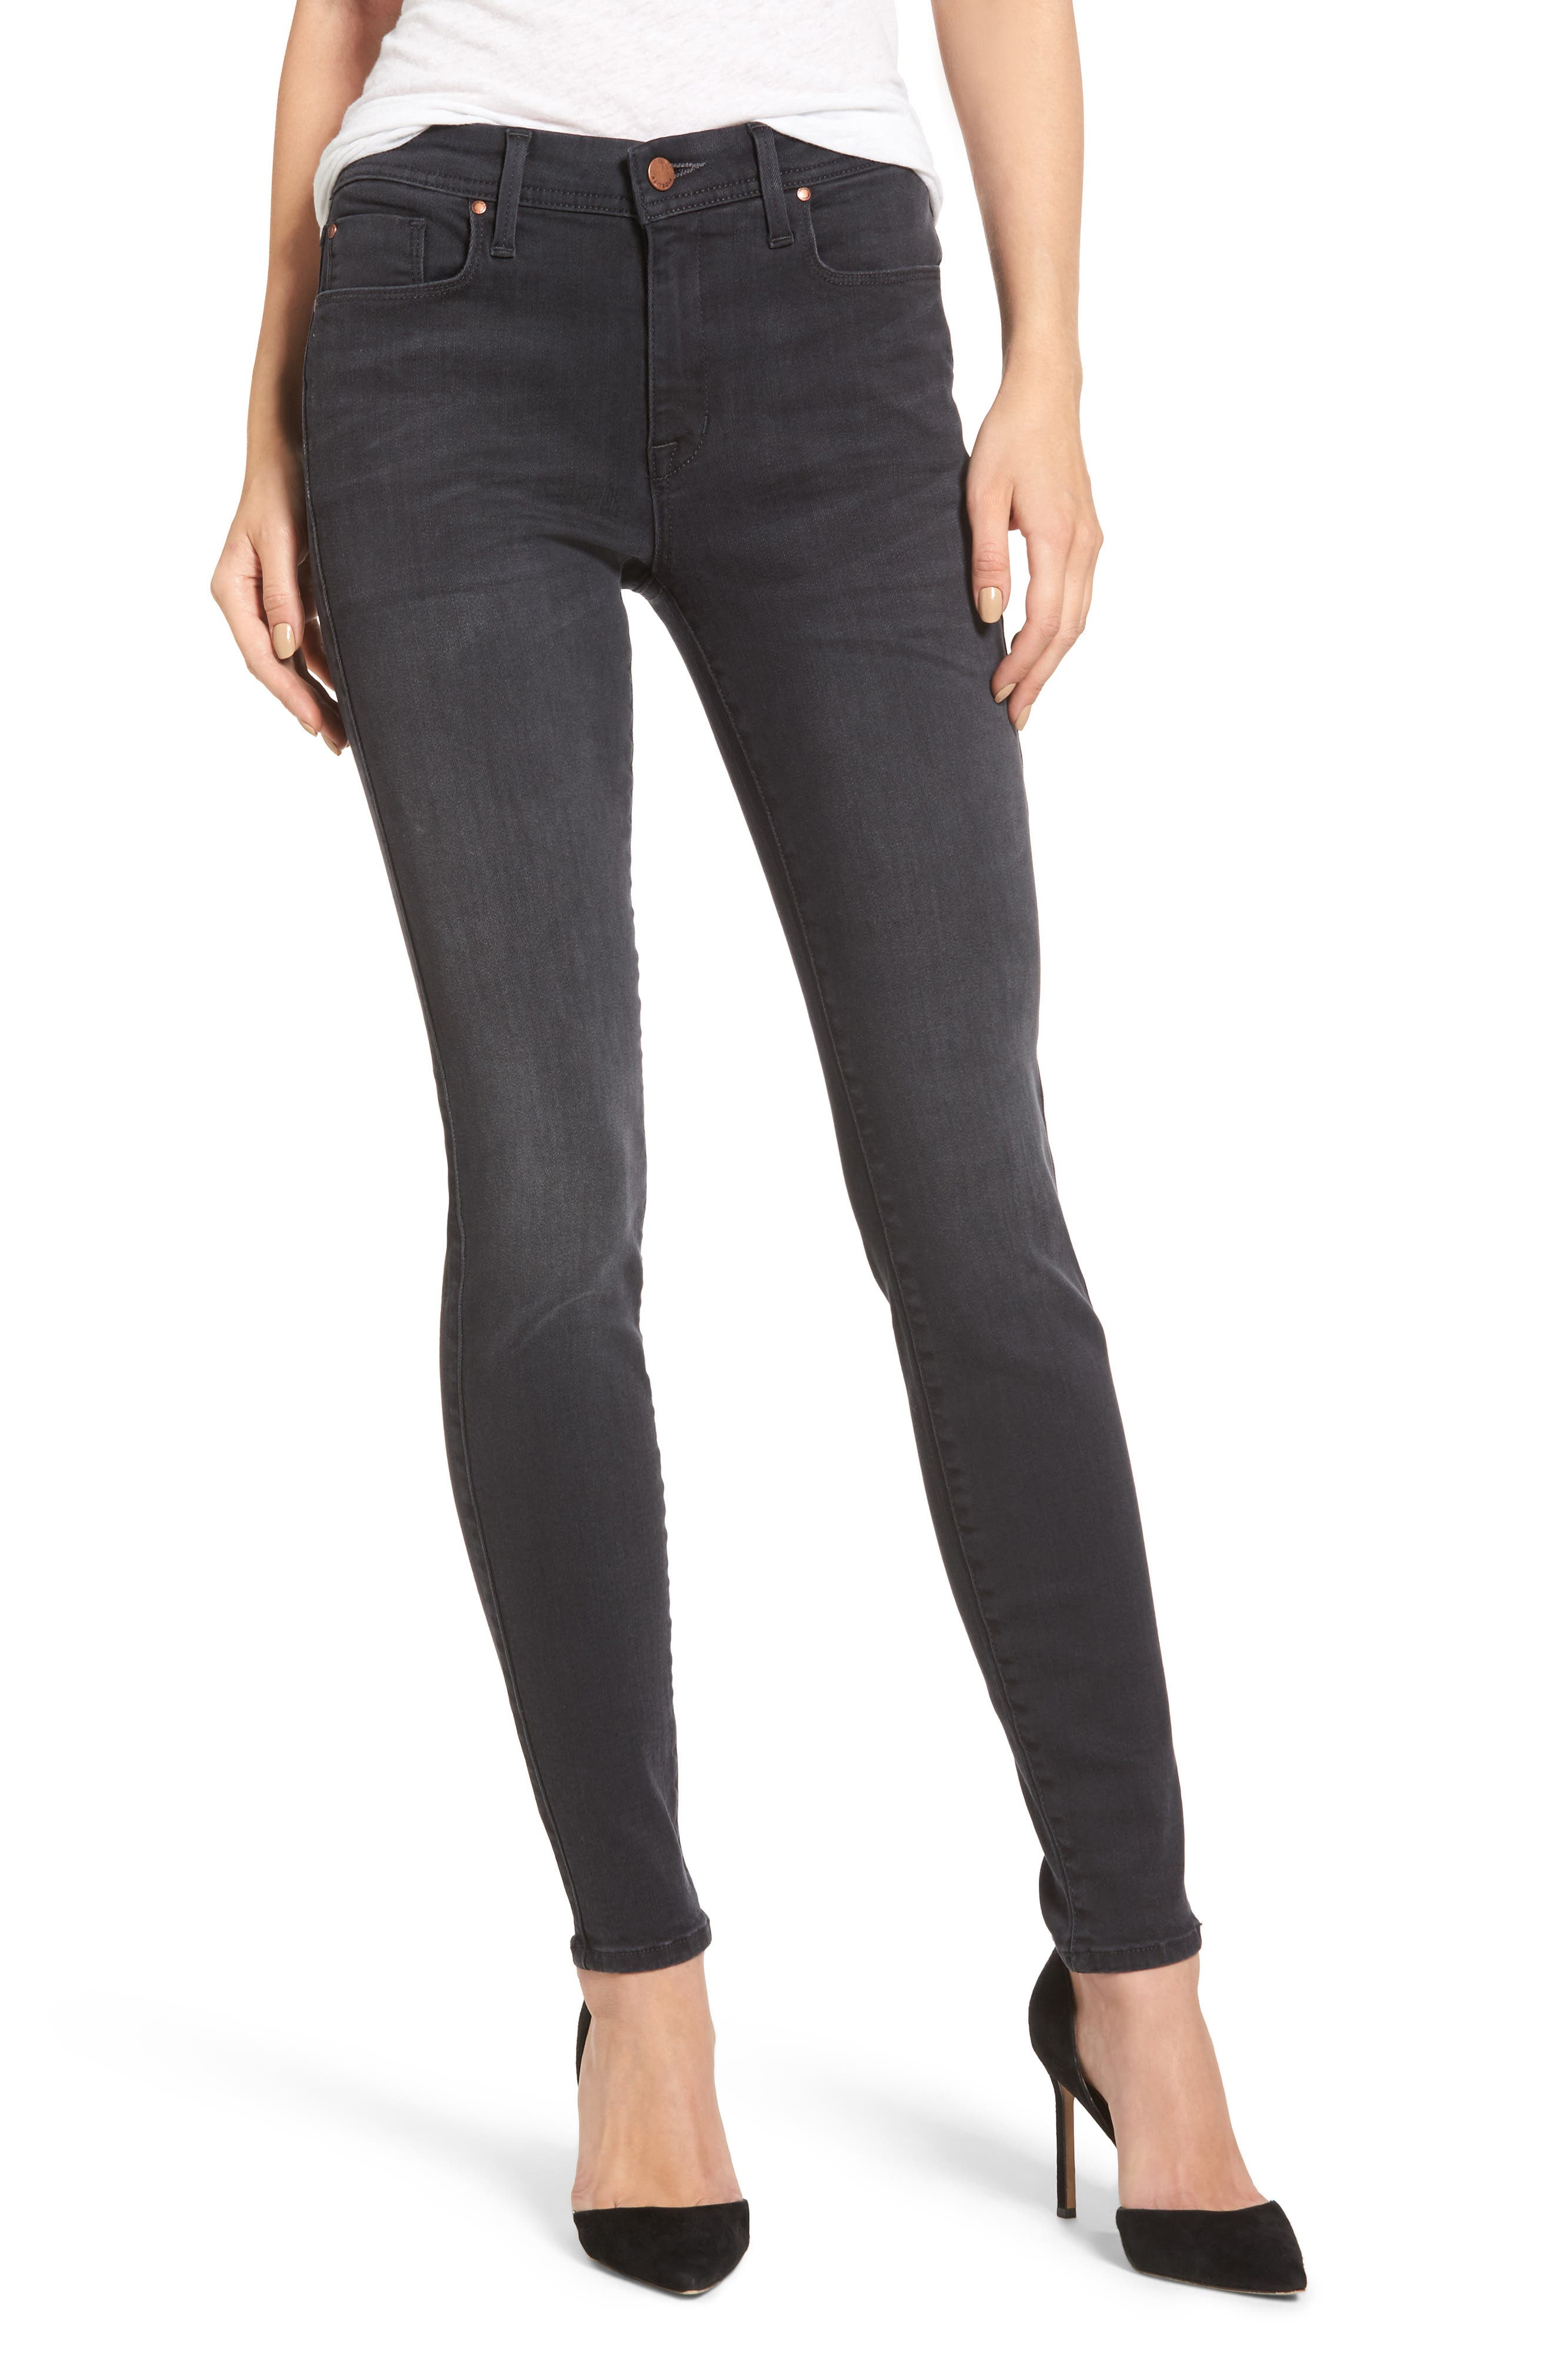 Belvedere Skinny Jeans,                             Main thumbnail 1, color,                             001